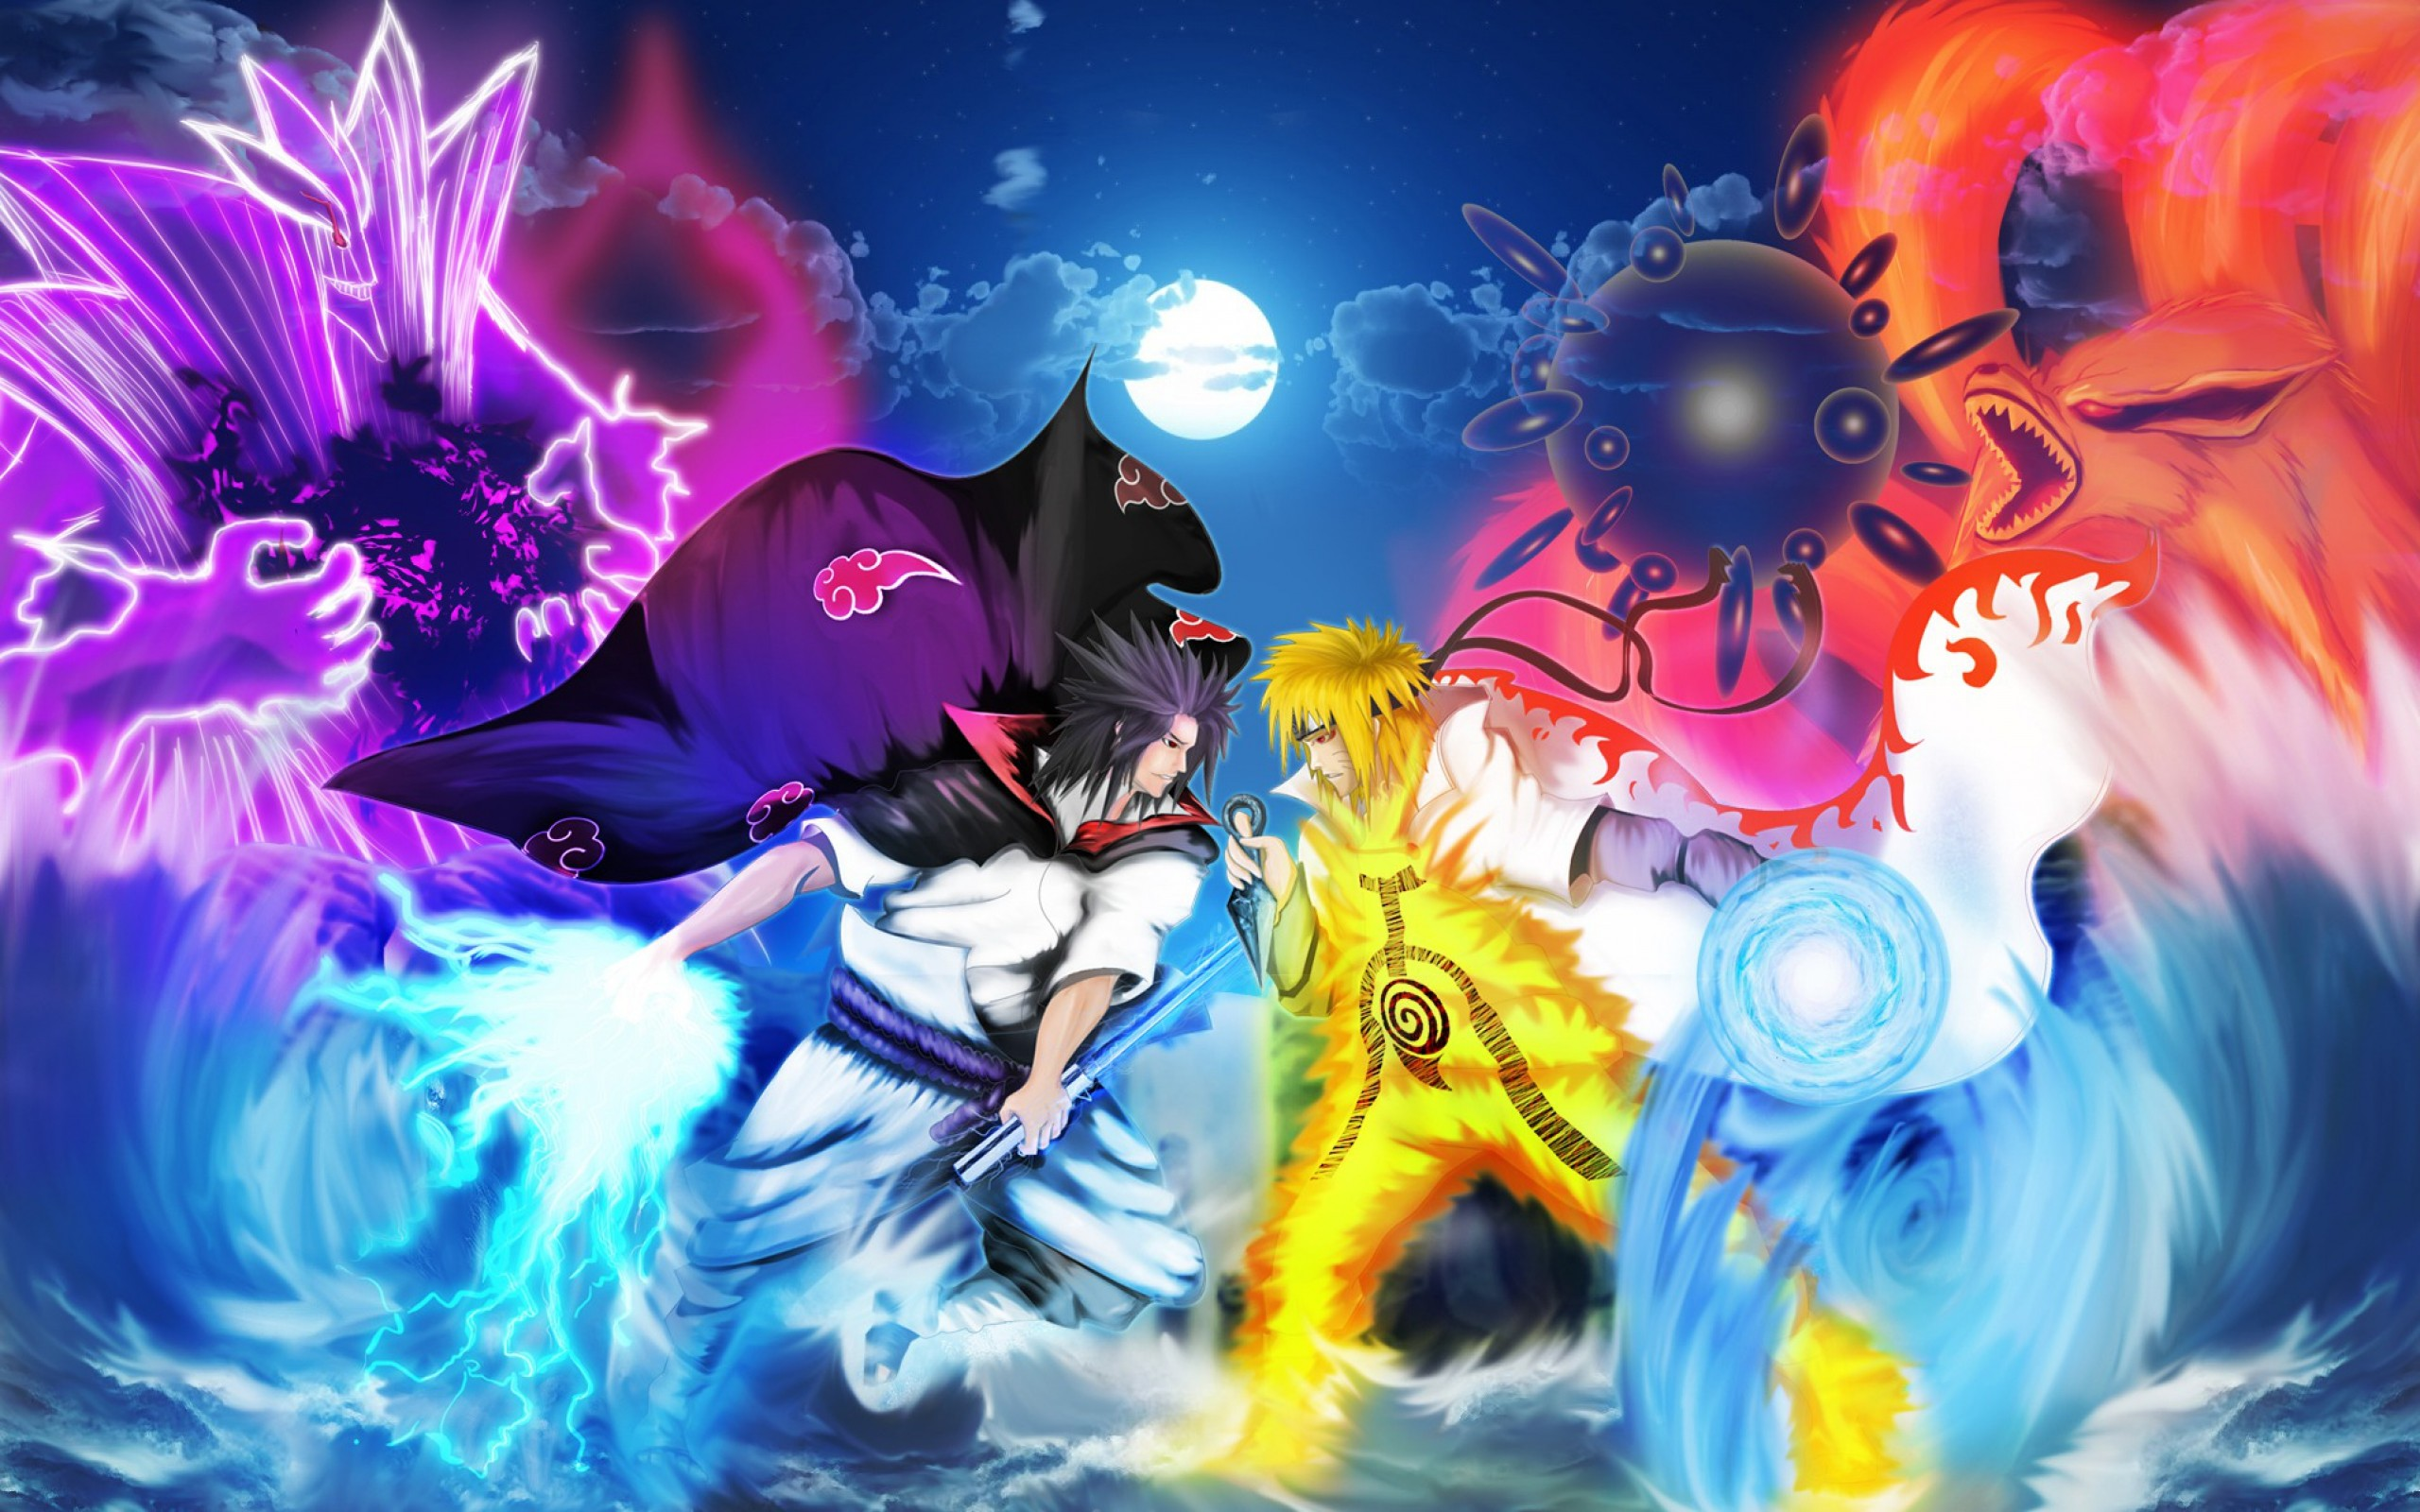 sasuke-and-naruto-wallpaper-x-for-iphone-pic-mch028563 - dzbc